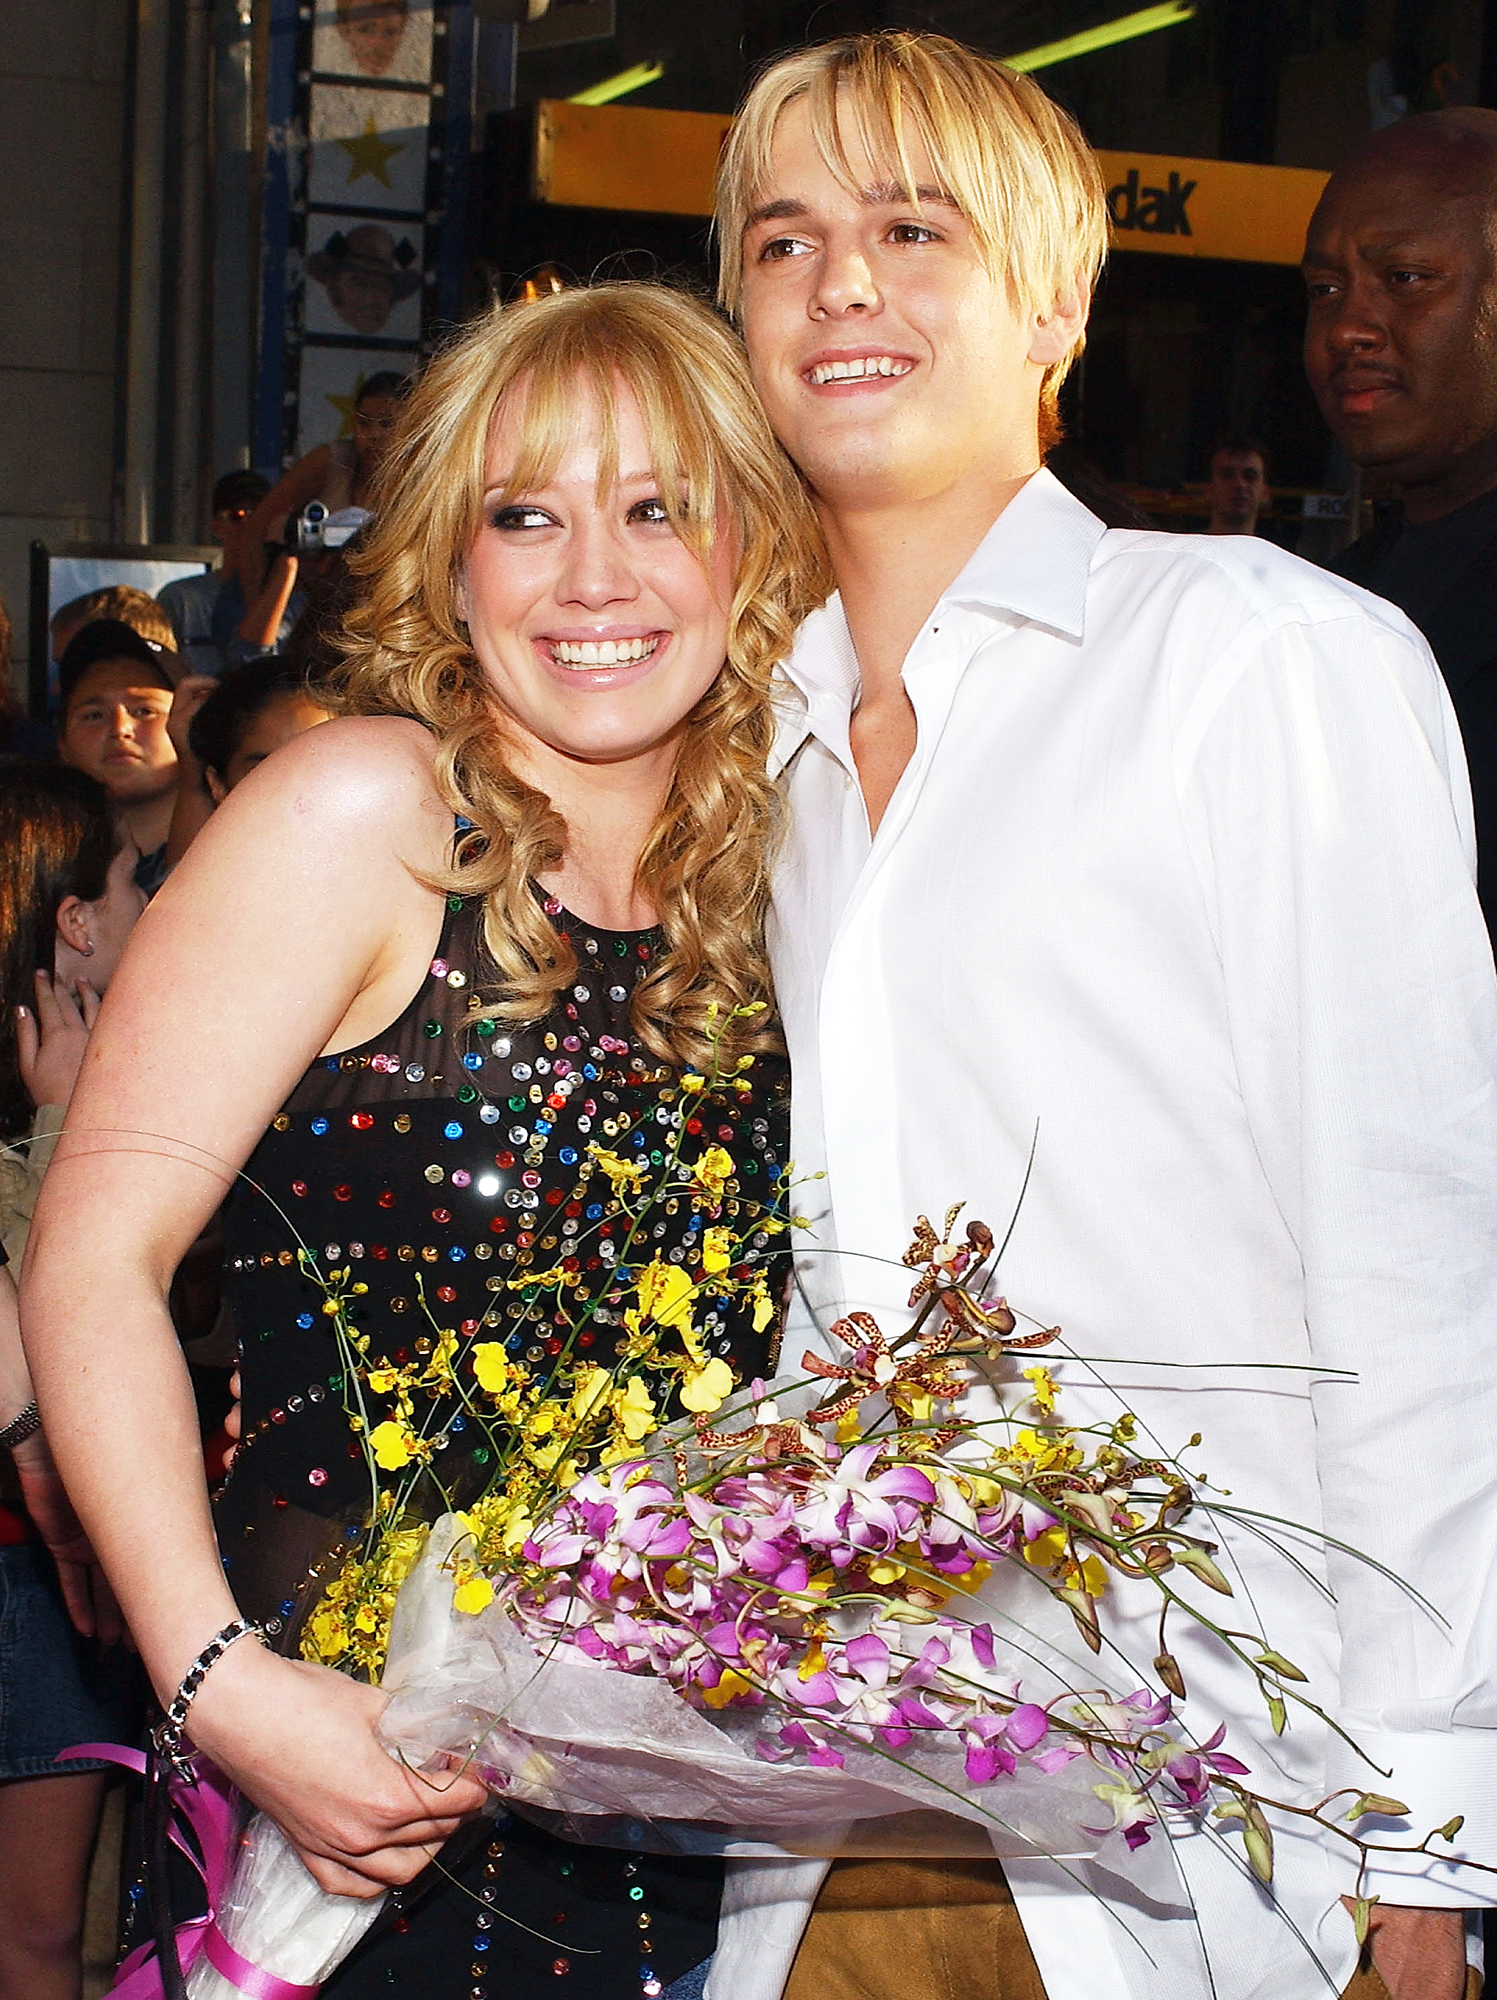 Hilary Duff Through The Years Aaron Carter 2003 - In 2003, Duff dated Nick Carter's kid brother Aaron. After the duo split, Aaron dated fellow Disney star Lindsay Lohan.